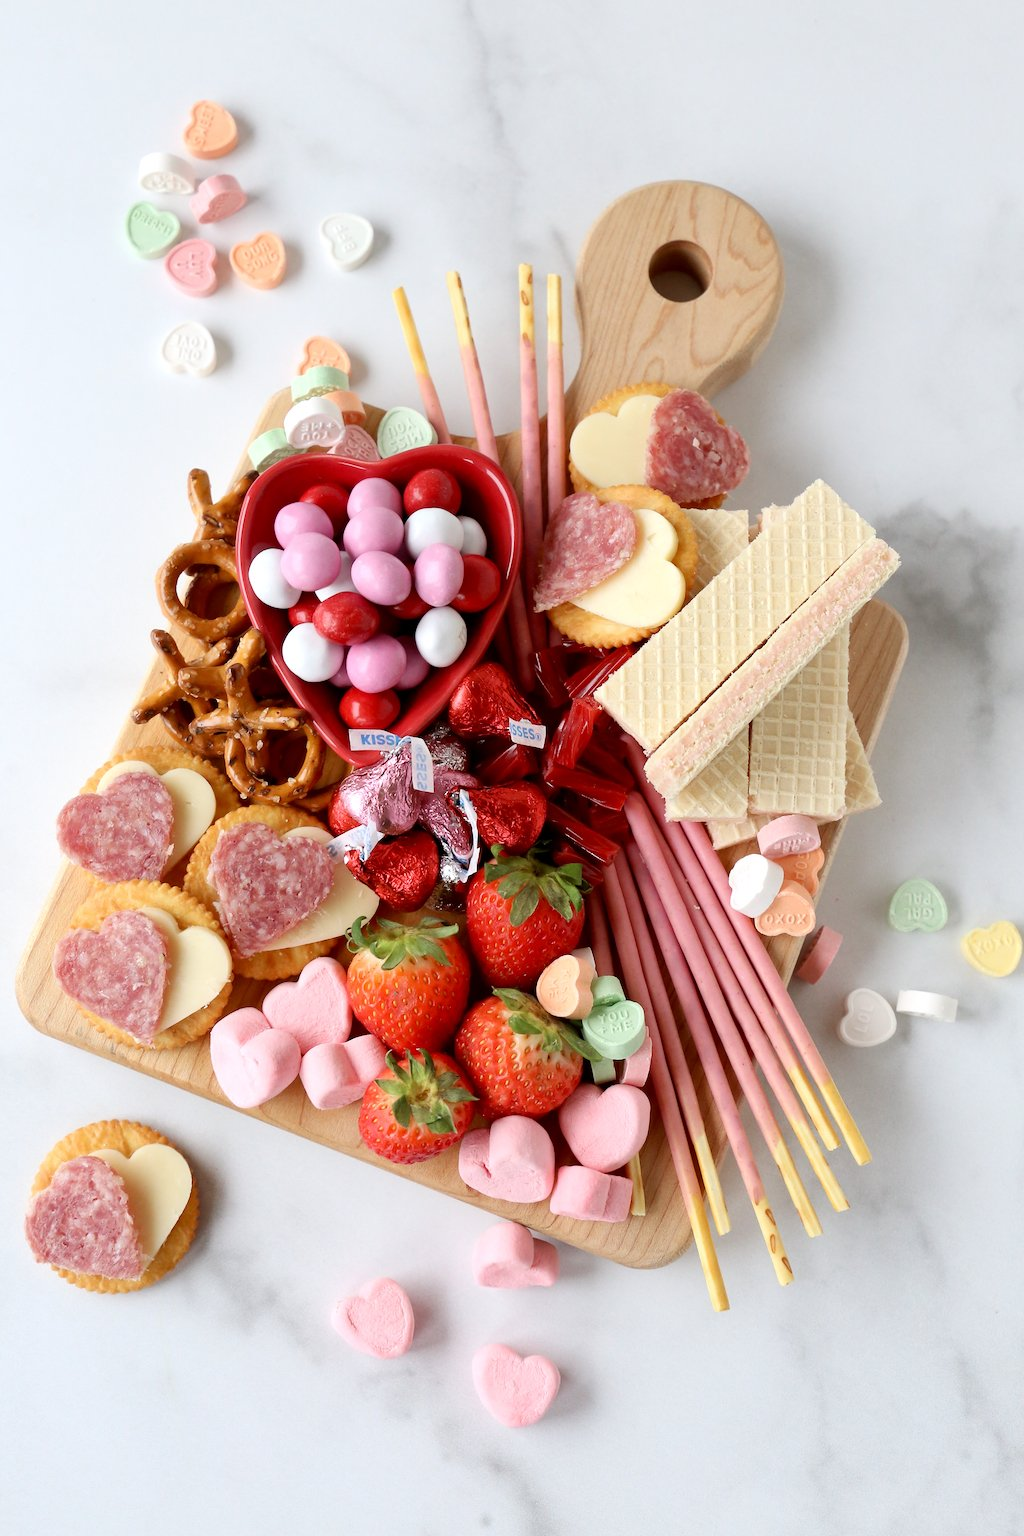 a wood cutting board filling with chocolate, marshmallows, strawberries, wafer cookies and salami and cheese crackers